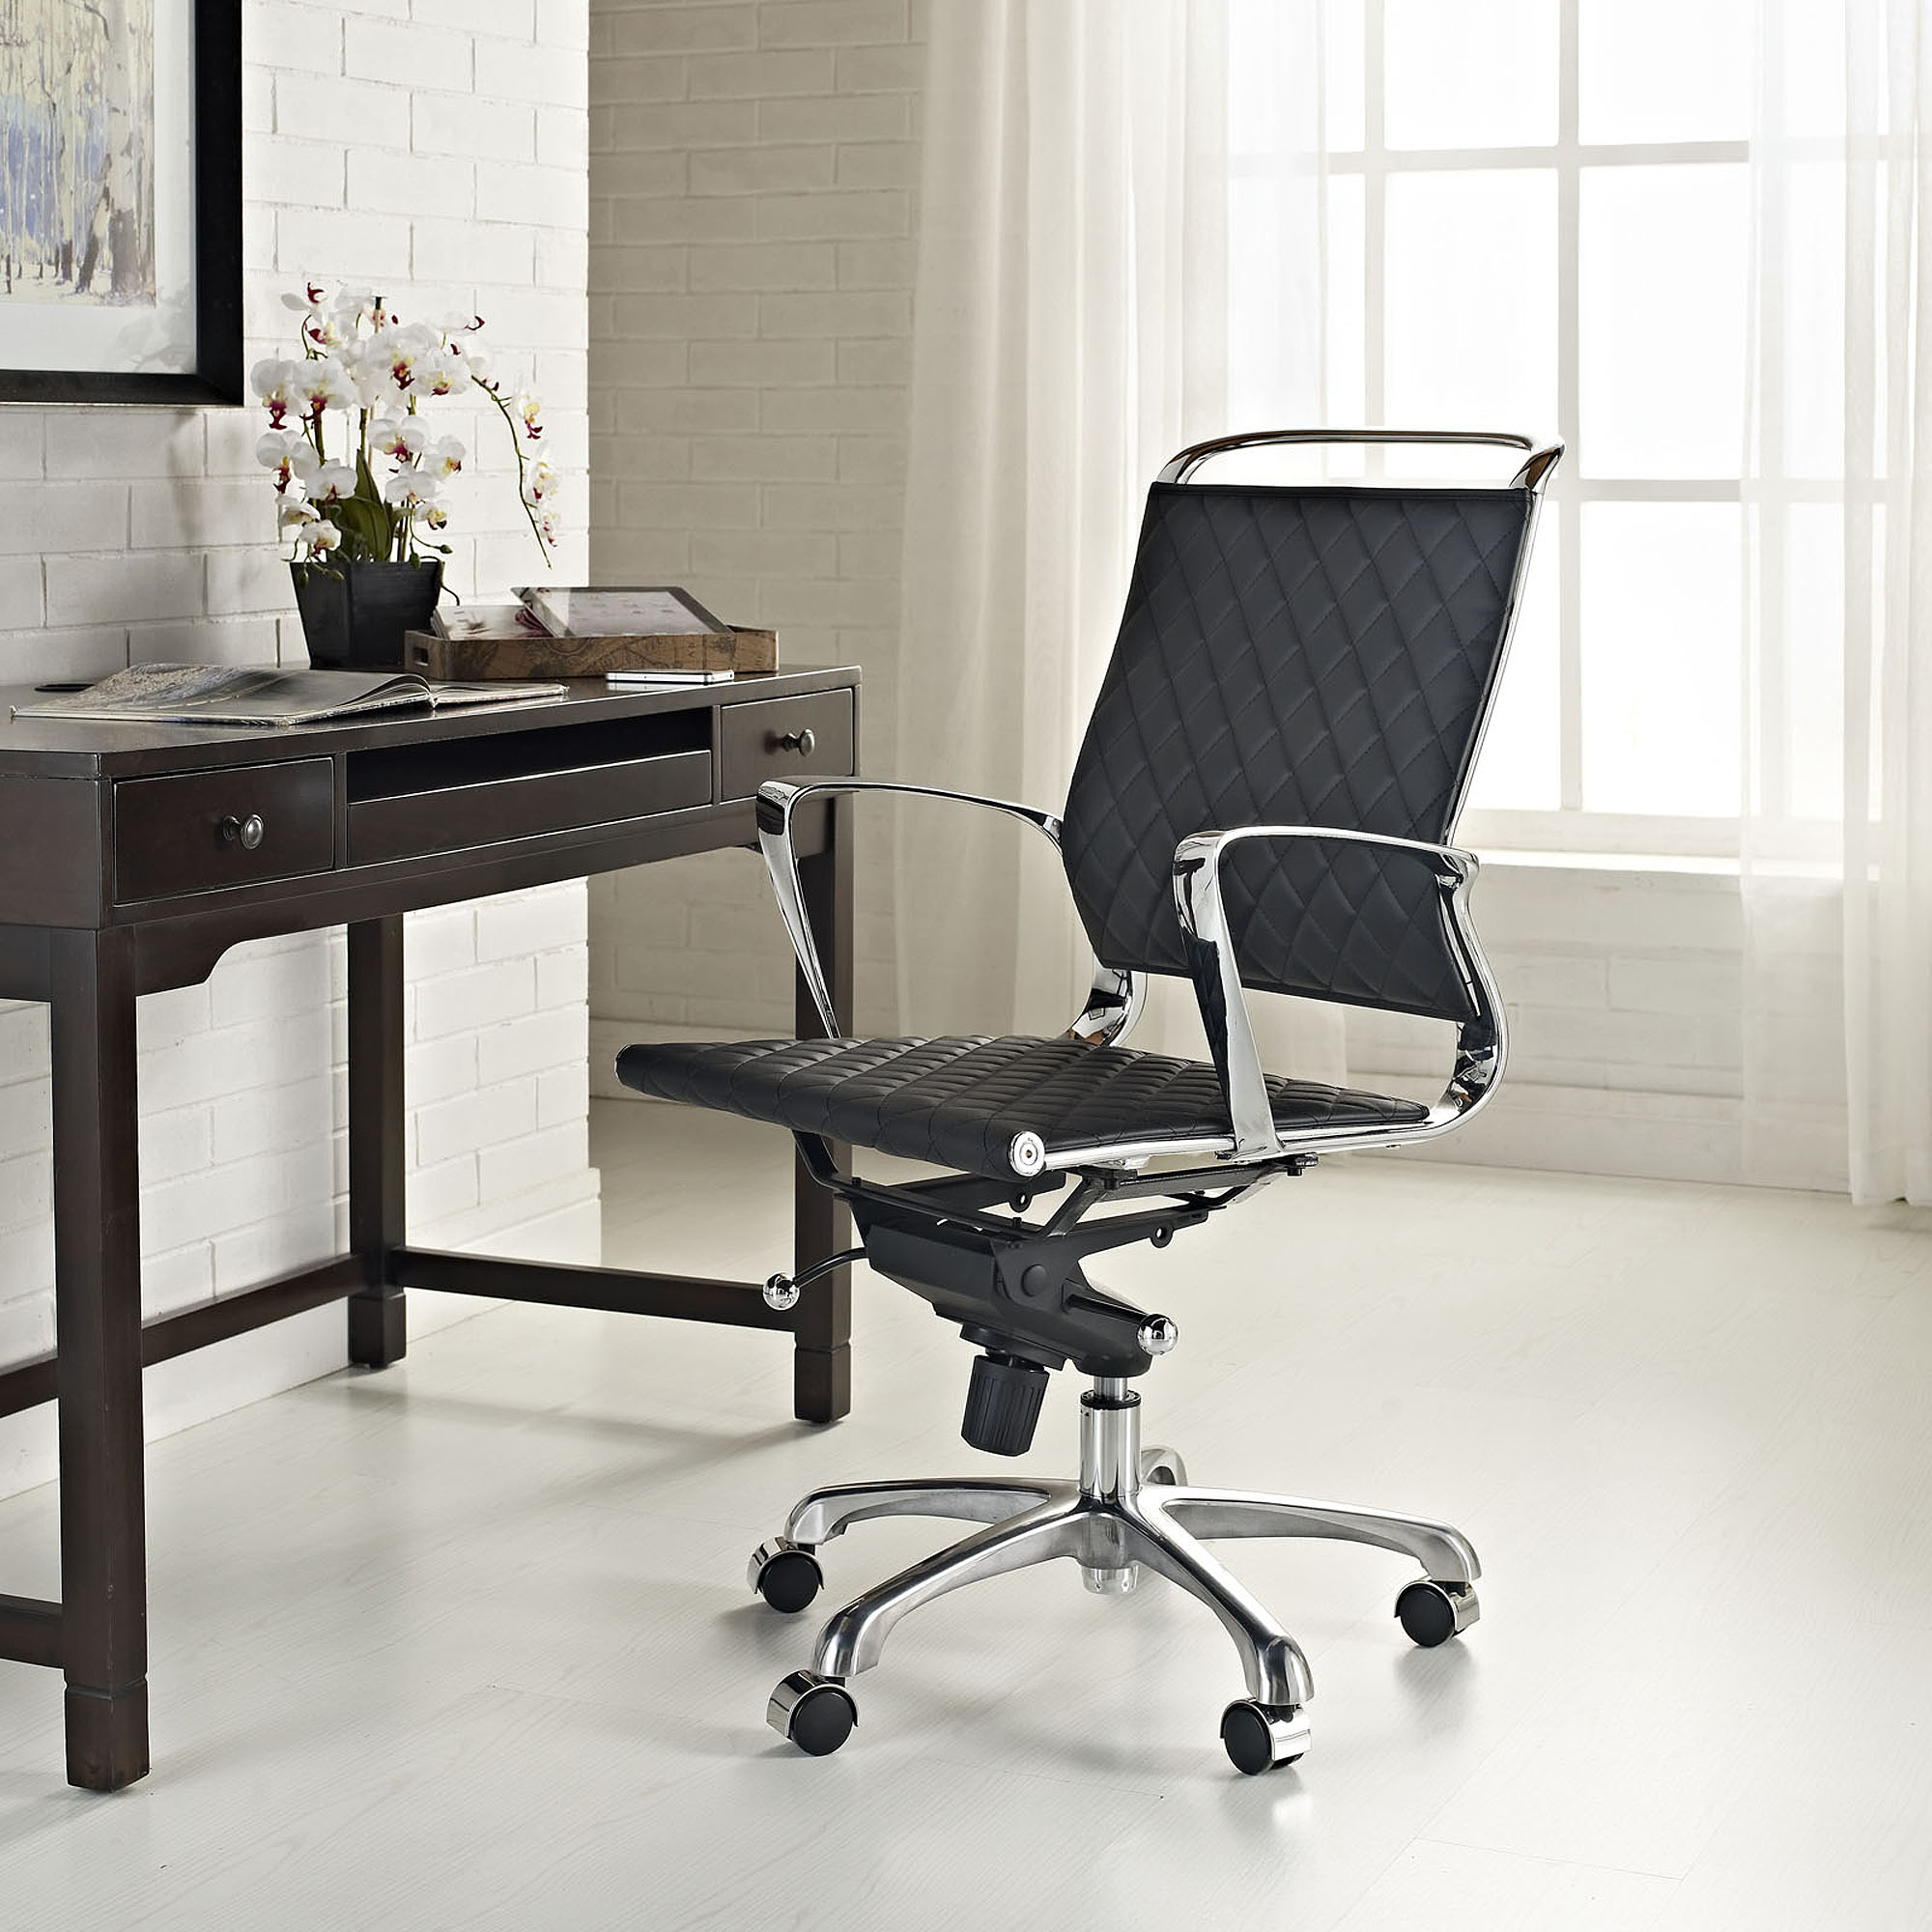 Modway Vibe Mid Back Leather fice Chair Multiple Colors